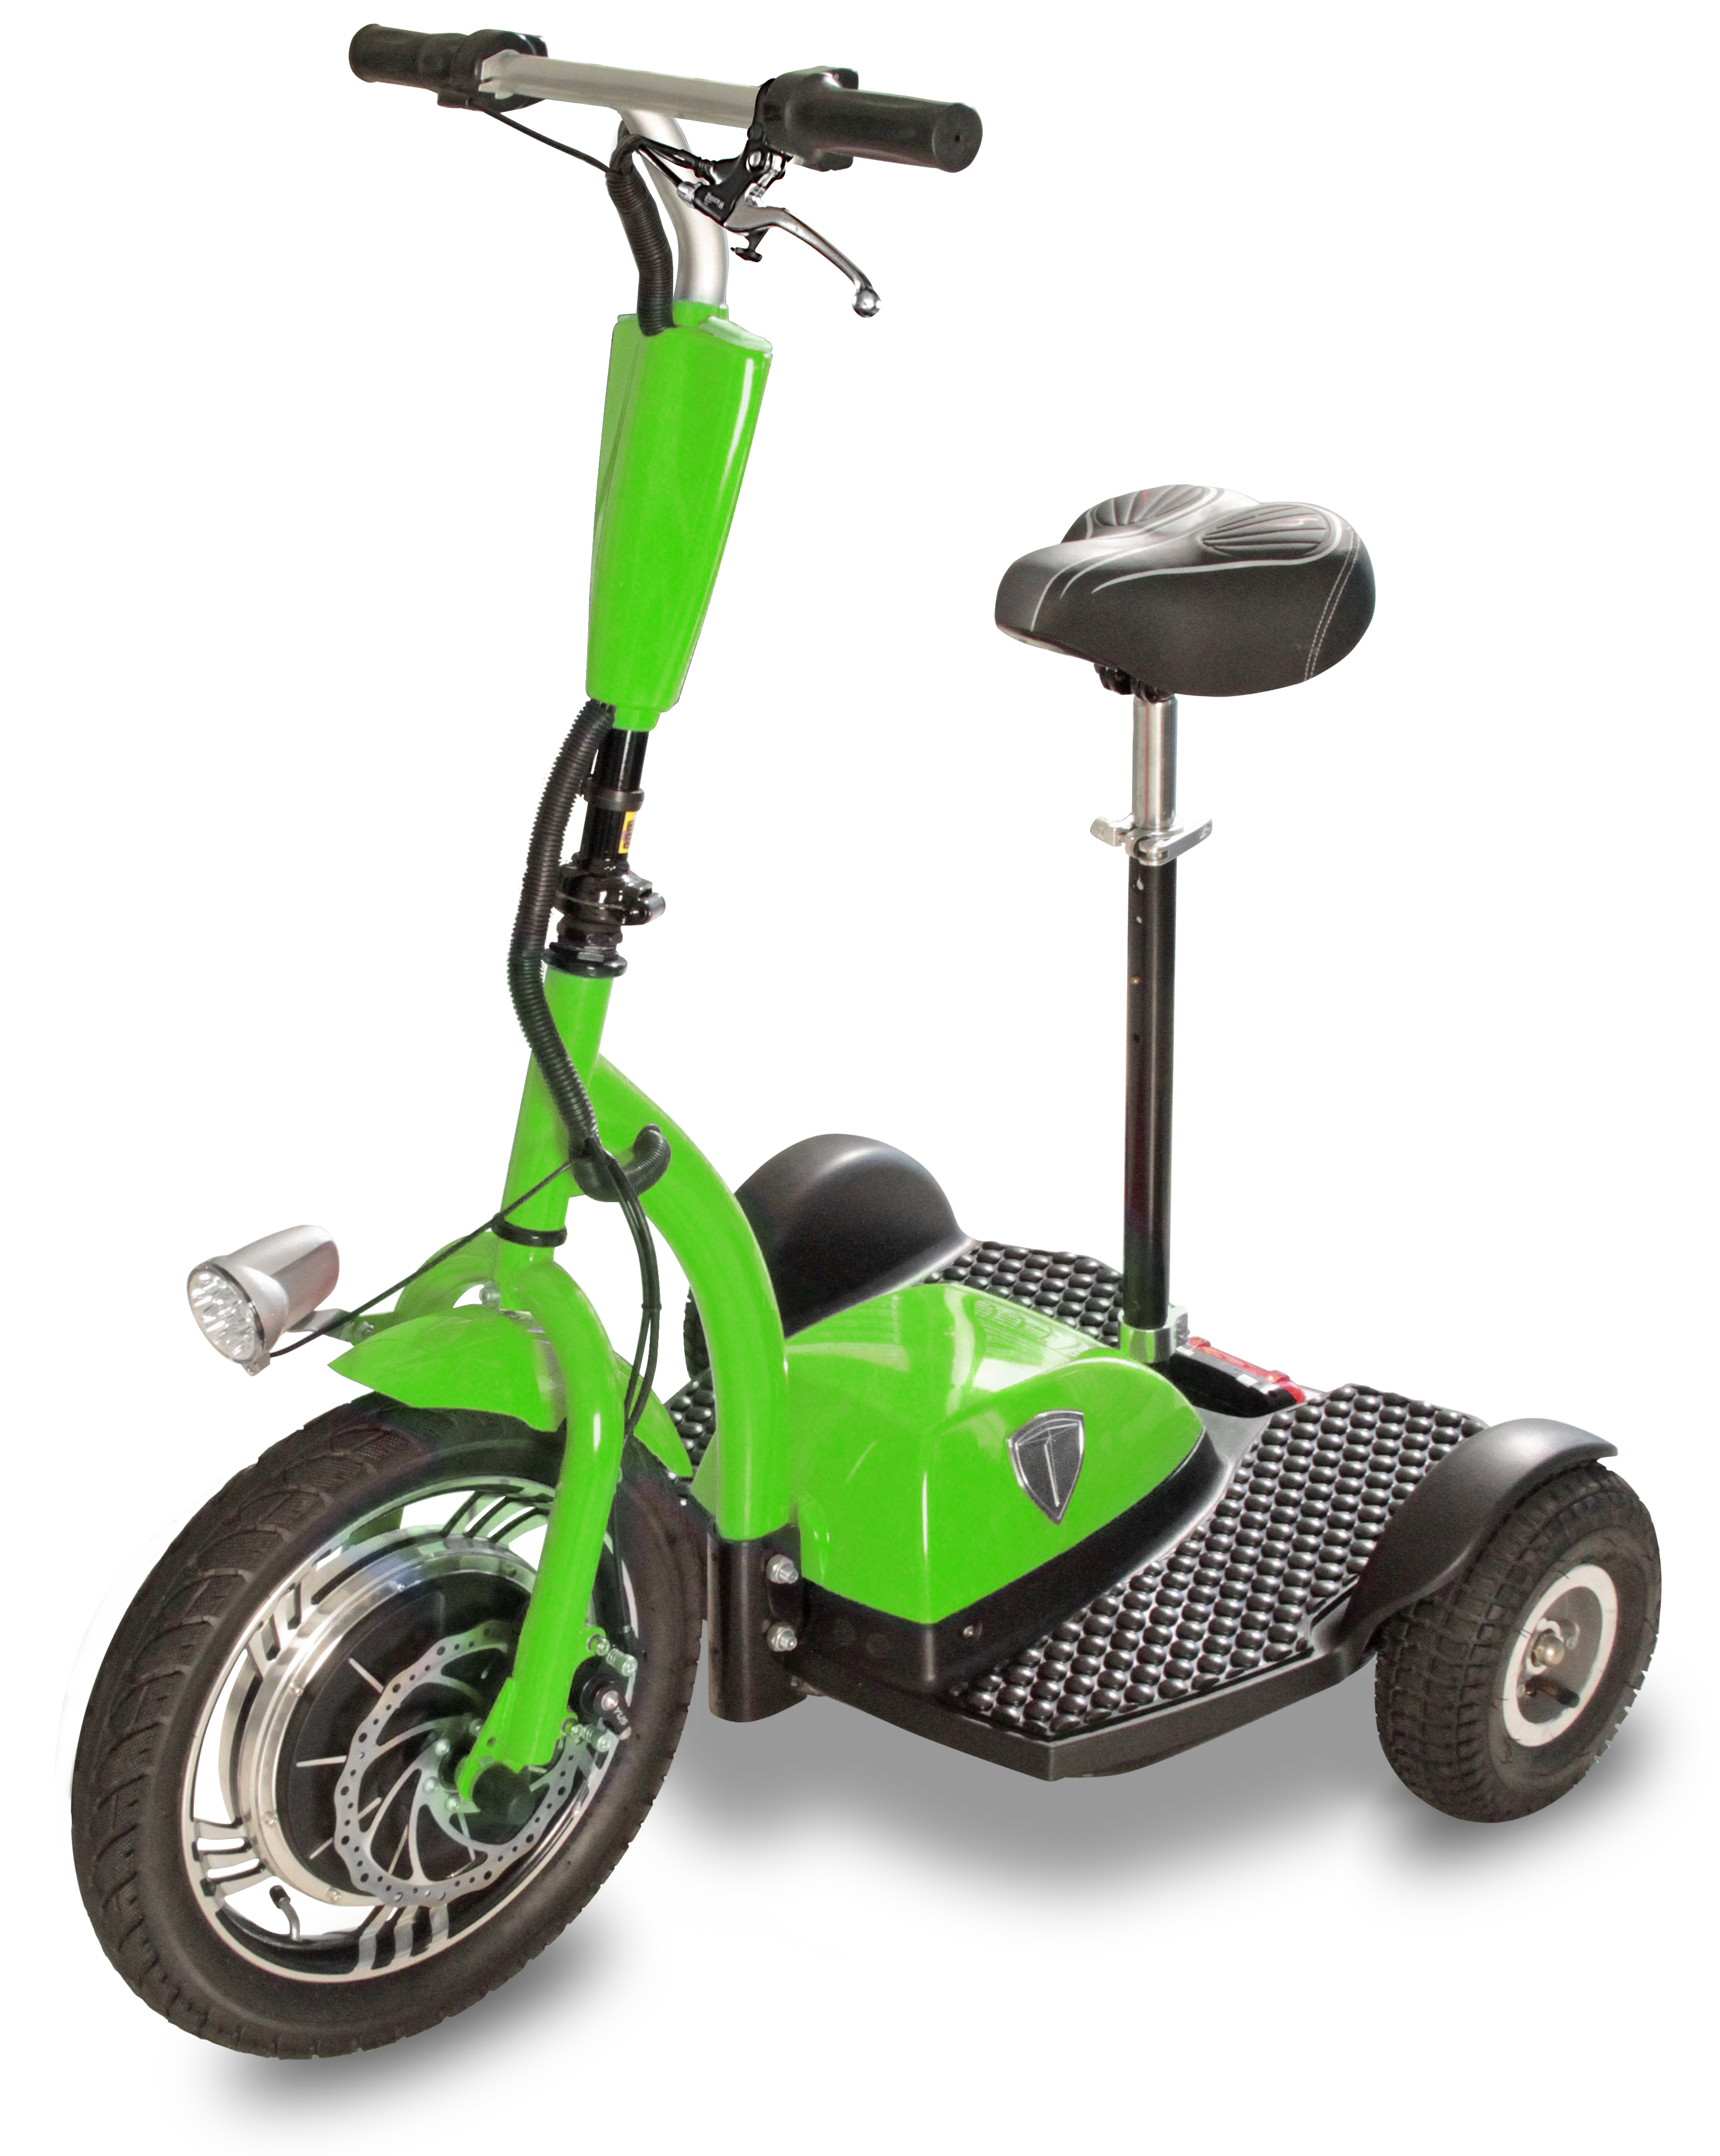 Lake erie scooters llc. Scooter clipart scooter line